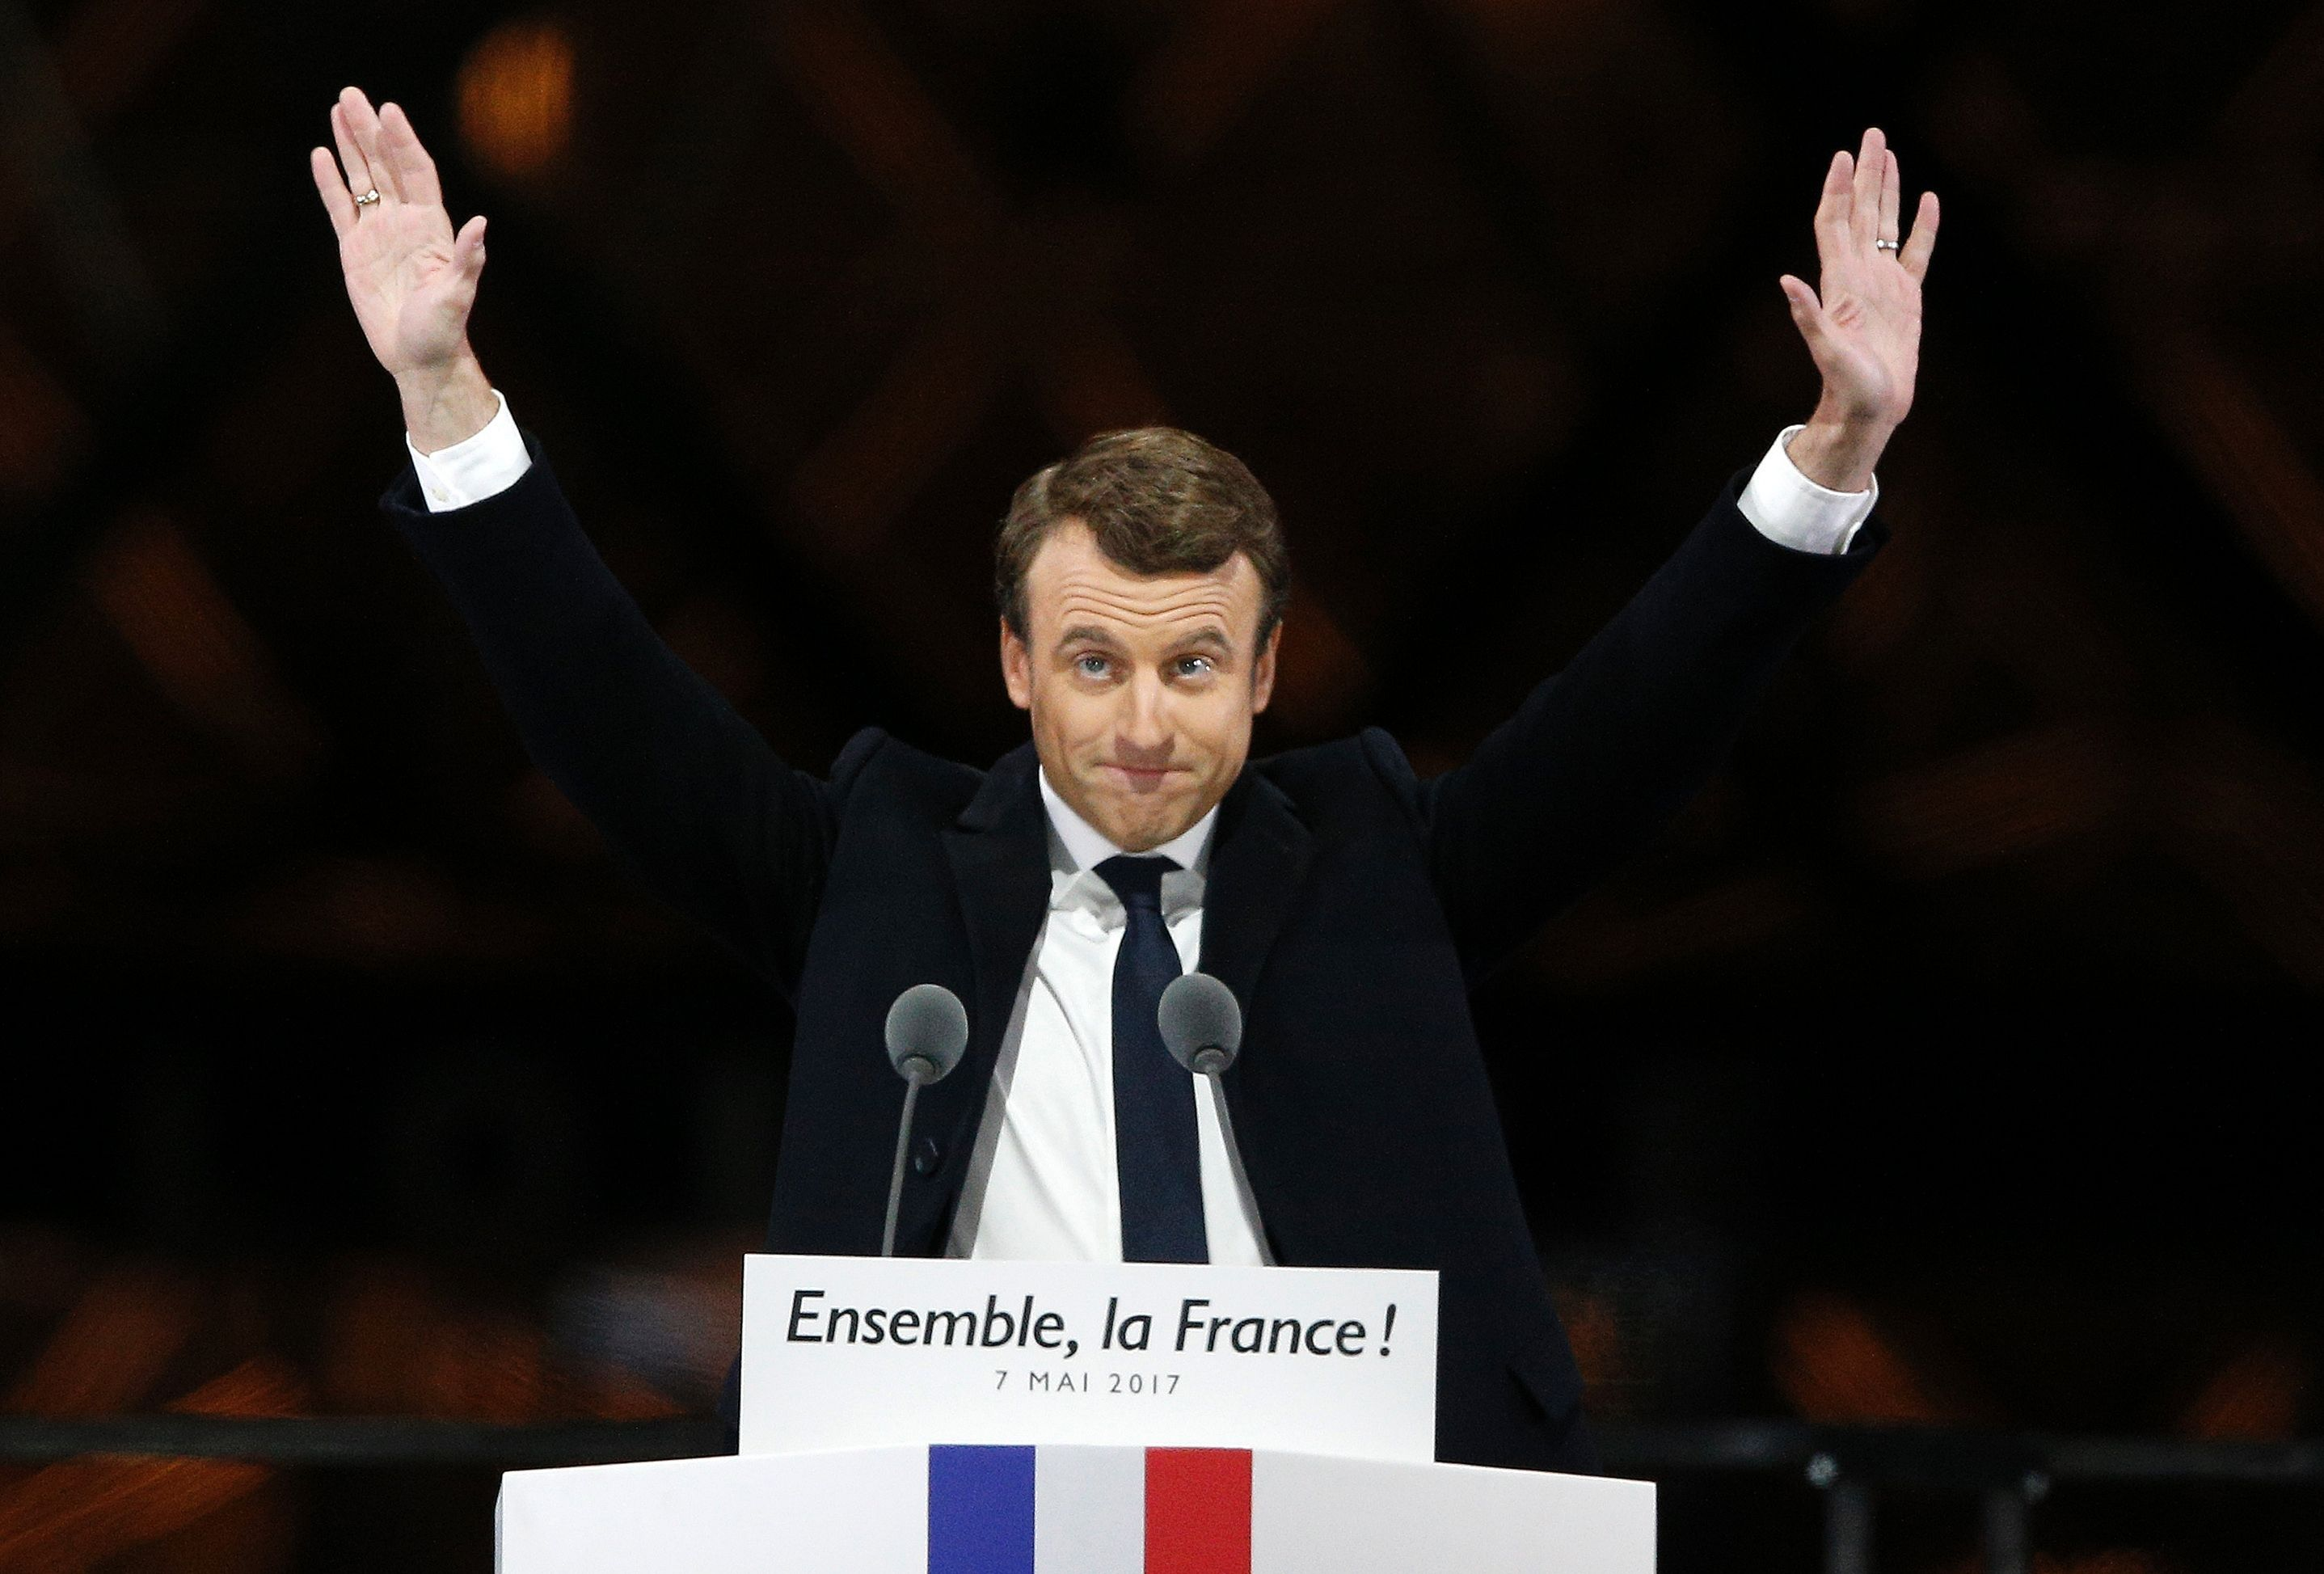 The people have decided, with about 90 percent of votes counted, Macron had 64 percent support; Le Pen had 36 percent. They have decided to put a pro EU man to the highest seat.  #election #EuropeanUnion